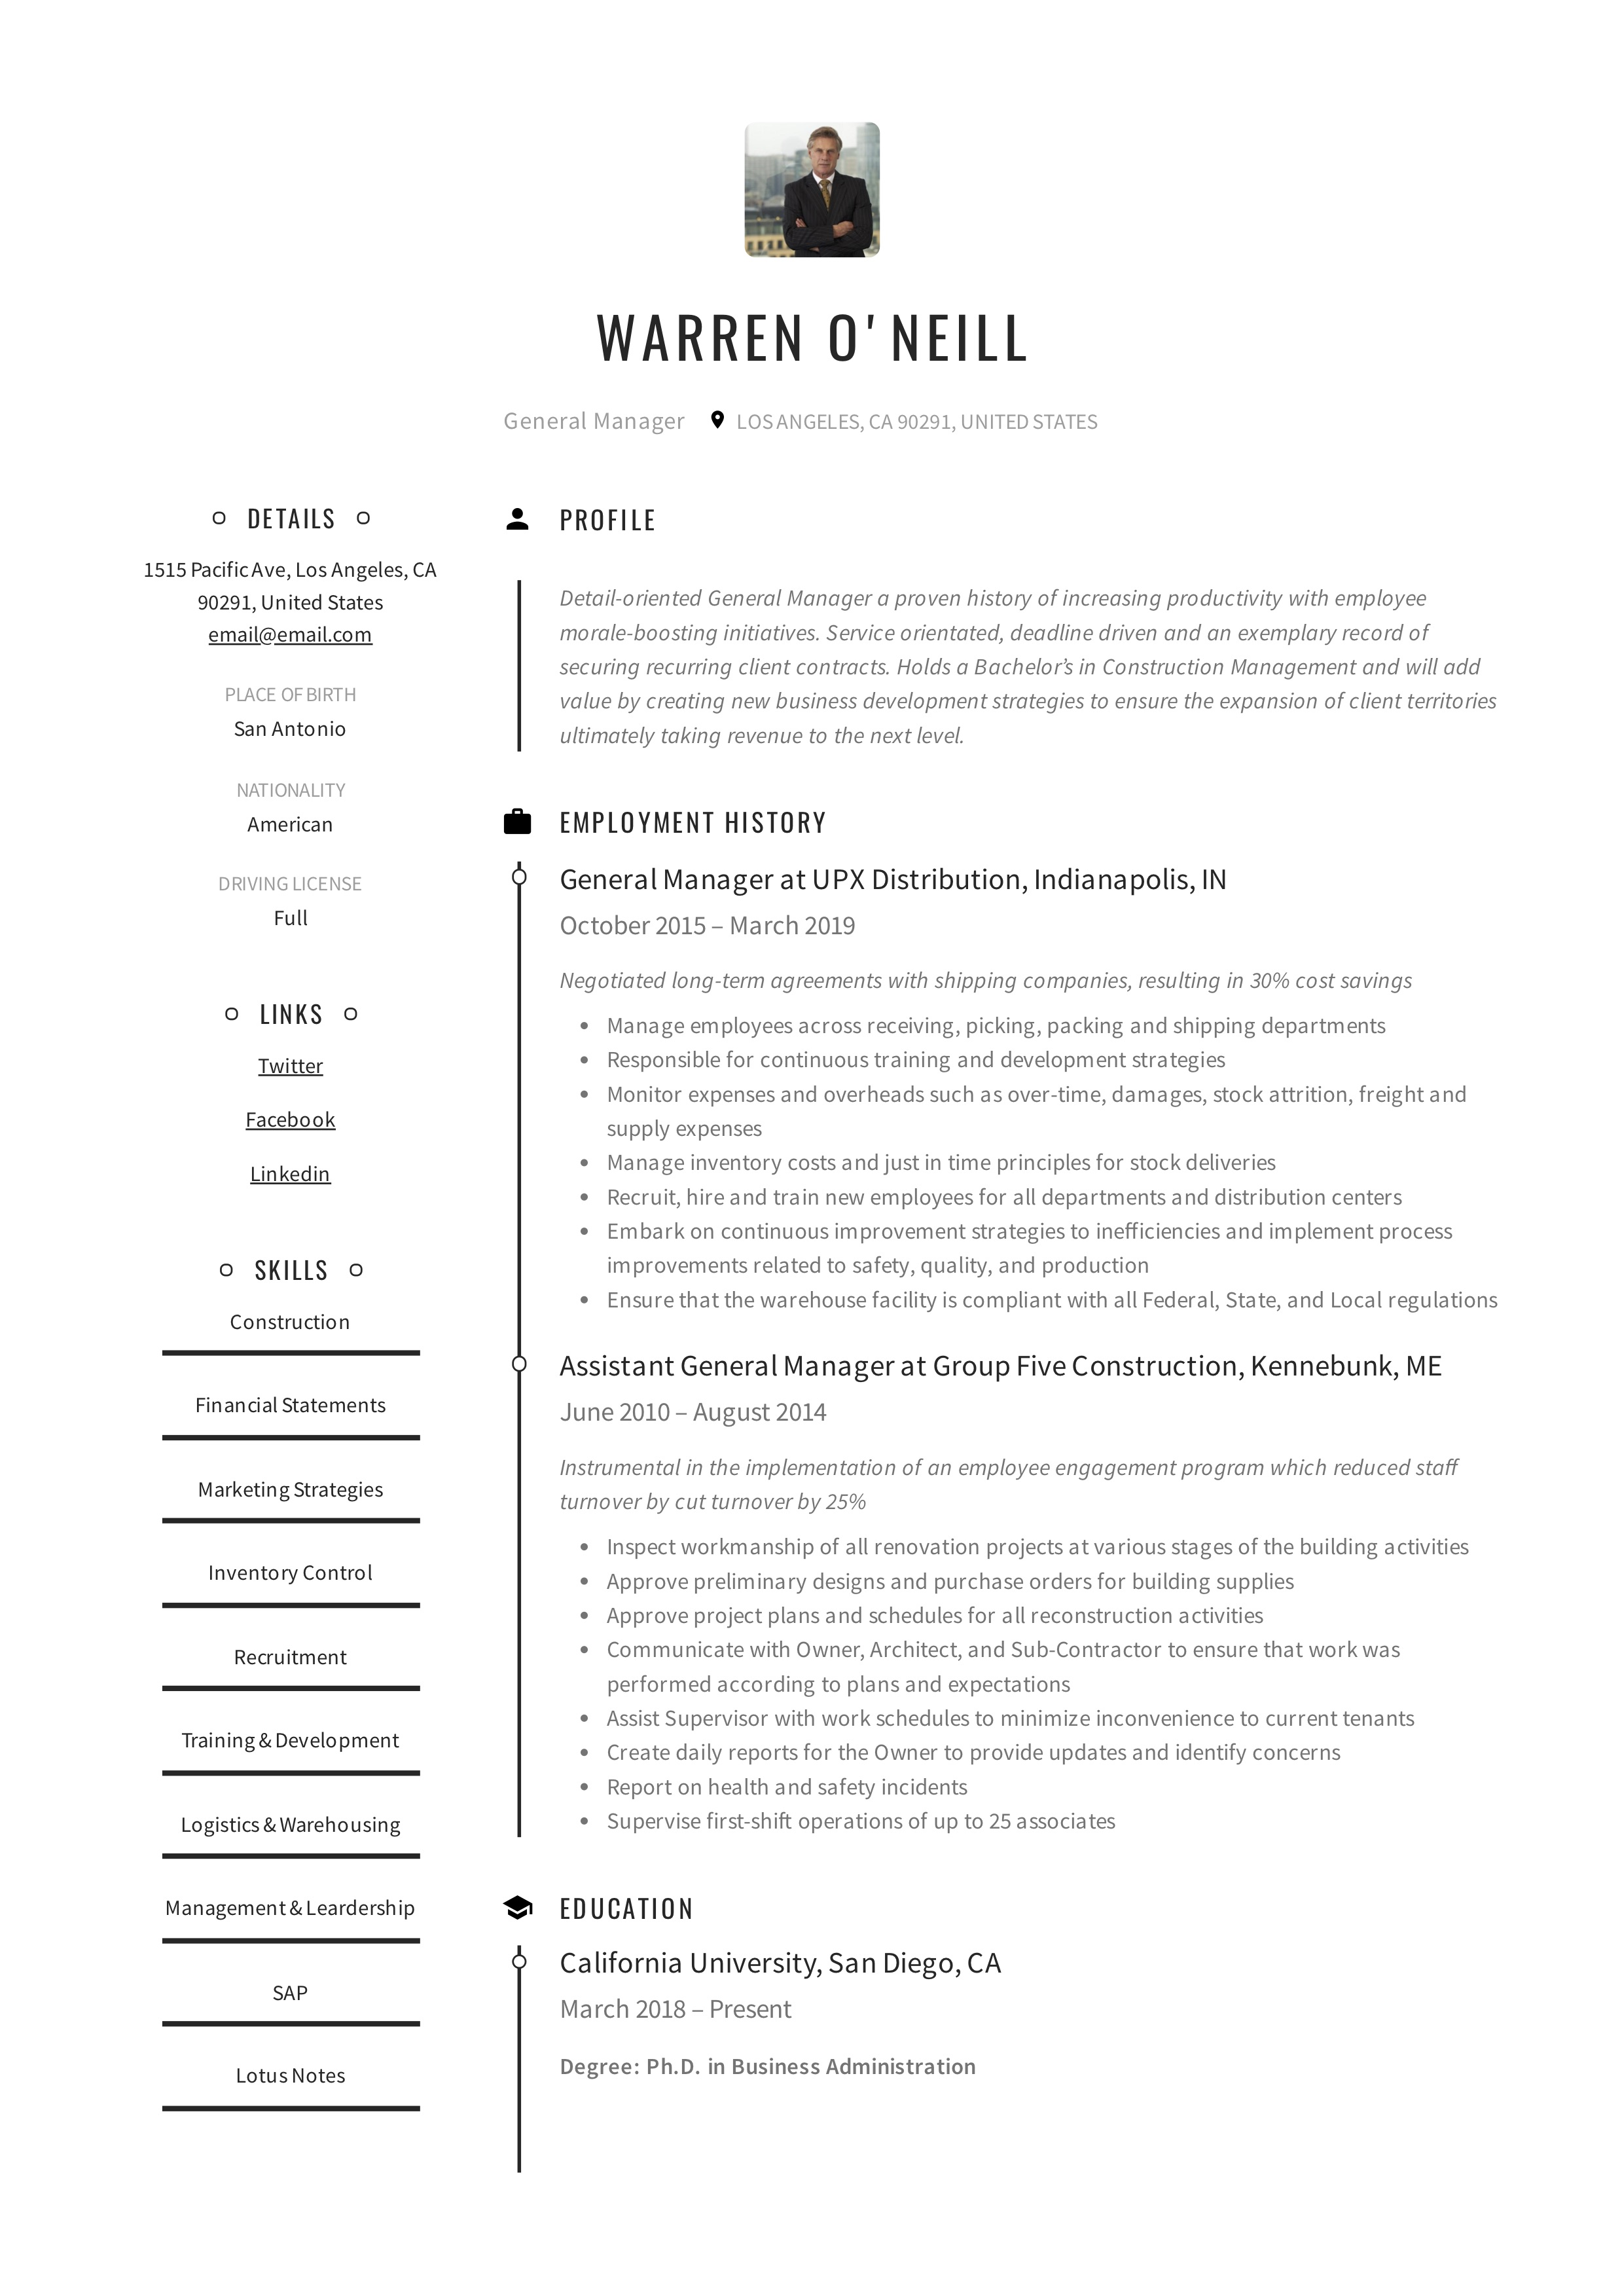 Warren_O_Neill_-_Resume_-_General_Manager (1)